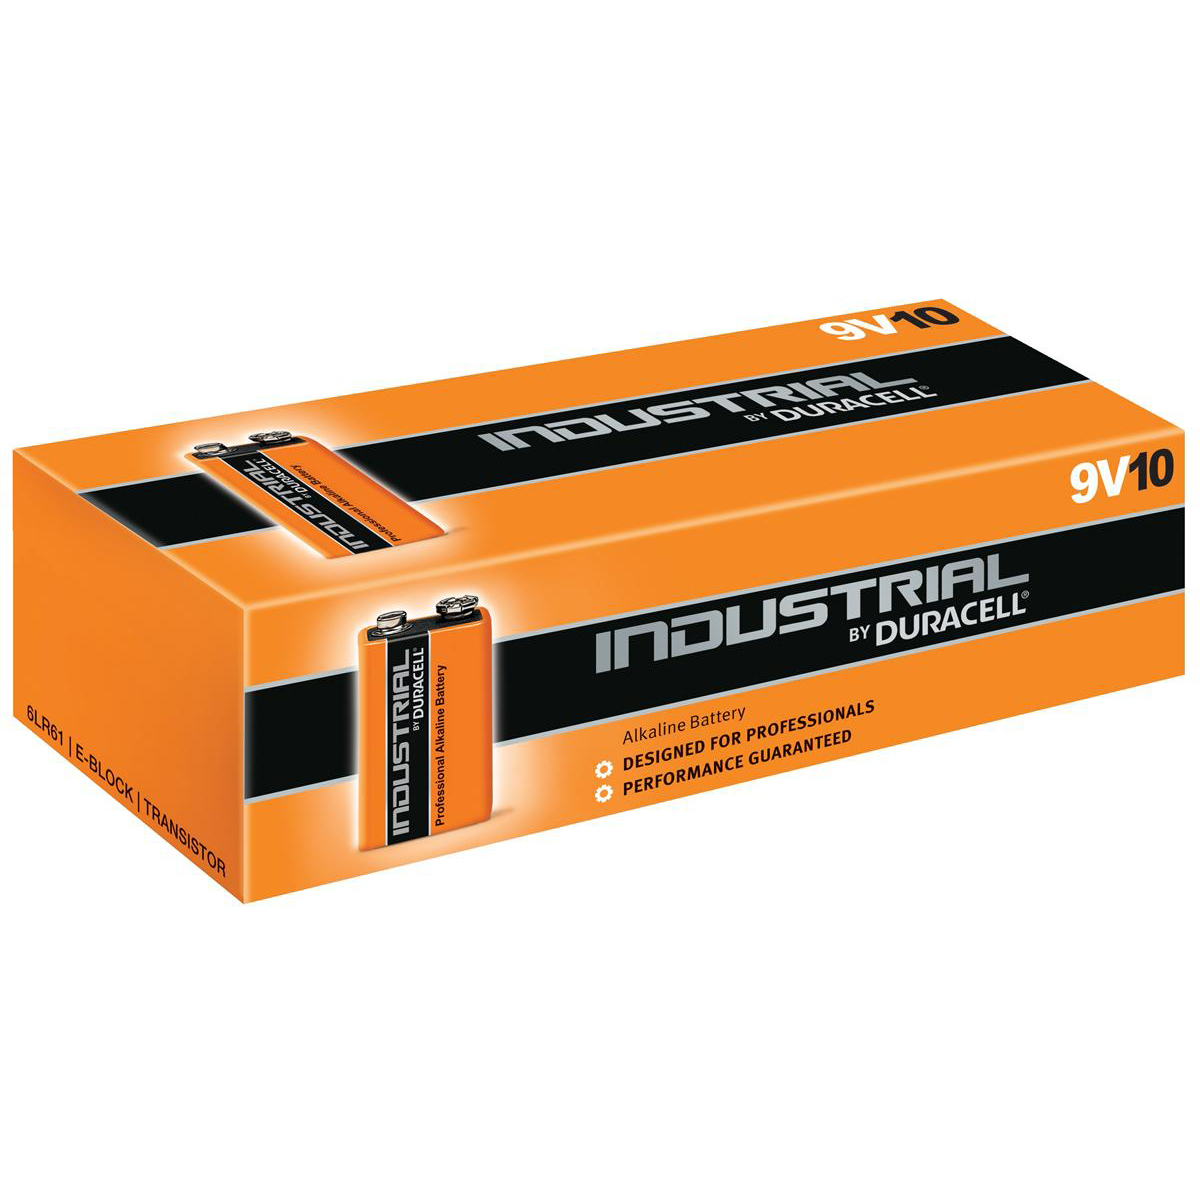 Duracell Industrial Battery Alkaline 9V Ref 81451922 Pack 10